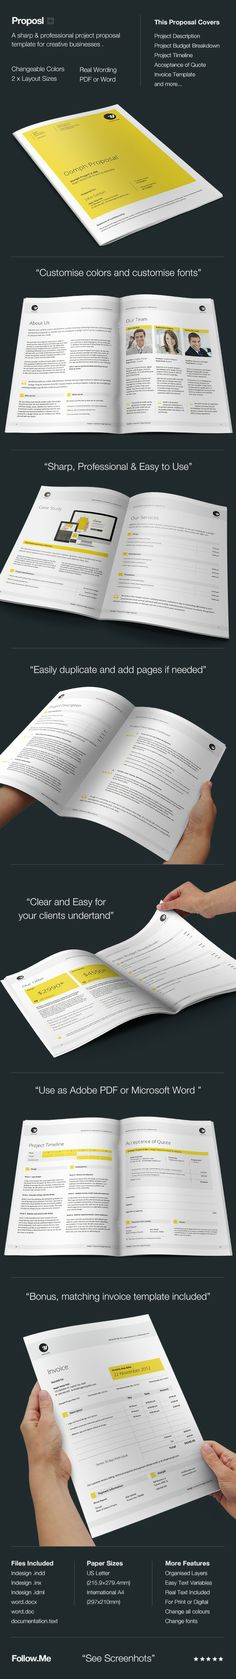 Check out the new Proposal & Brief Template – Neue Proposal.Proposl FeaturesA Sharp and Professional Project Proposal template for creative businesses, created in Adobe InDesign and MS Word, it comes in two paper sizes including US Letter and Internat… Stationery Design, Brochure Design, Brochure Template, Book Design, Layout Design, Print Design, Graphic Design, 2d Design, Project Proposal Template